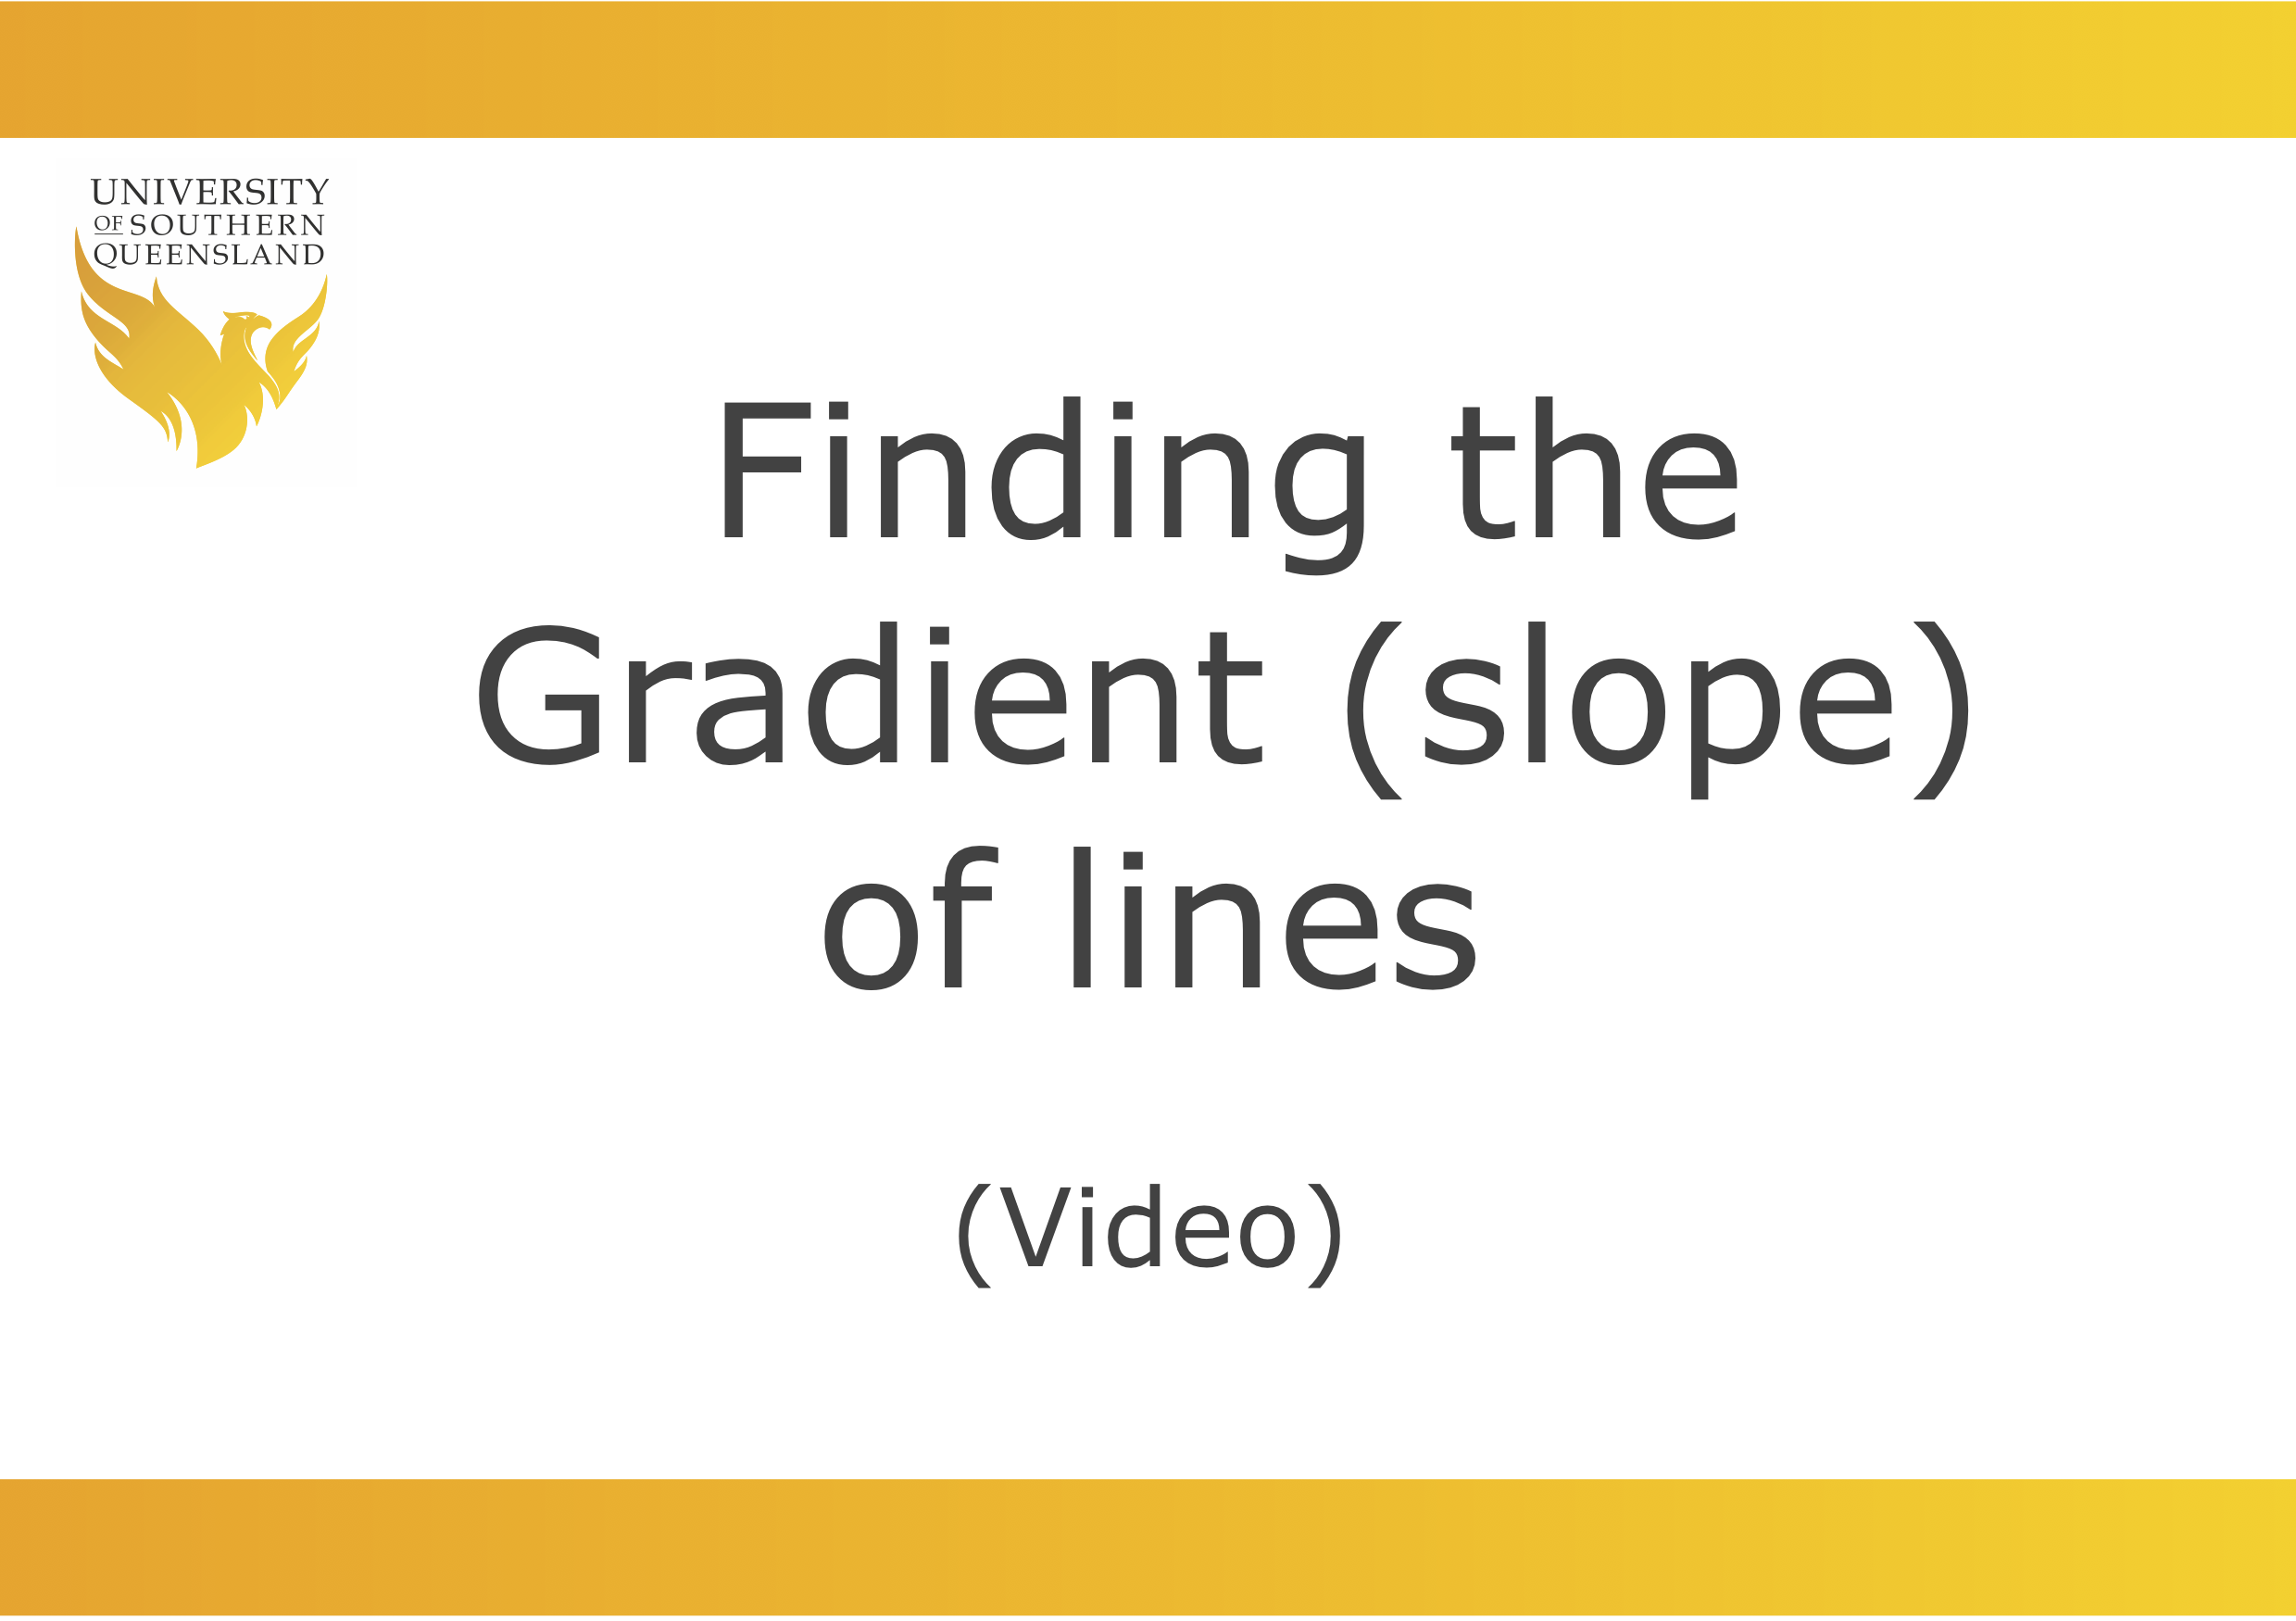 Image to play the video: gradient